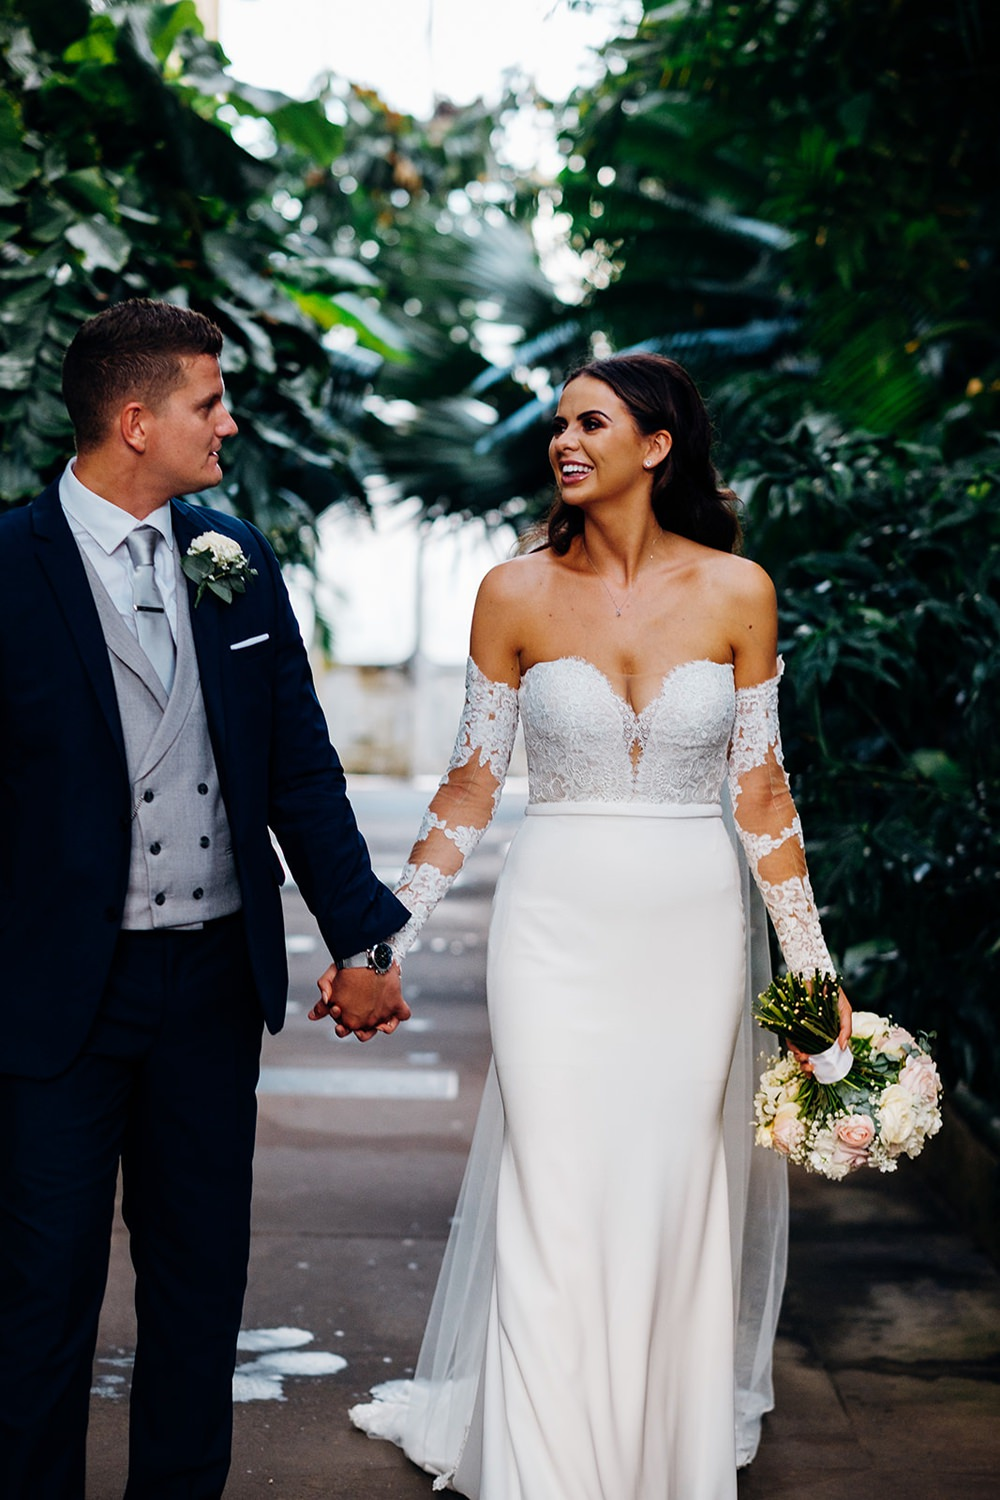 Bride Bridal Pronovias Sweetheart Neckline Detached Sleeves Fishtail Three Piece Suit Groom Waistcoat Double Breasted Kew Gardens Wedding Marianne Chua Photography